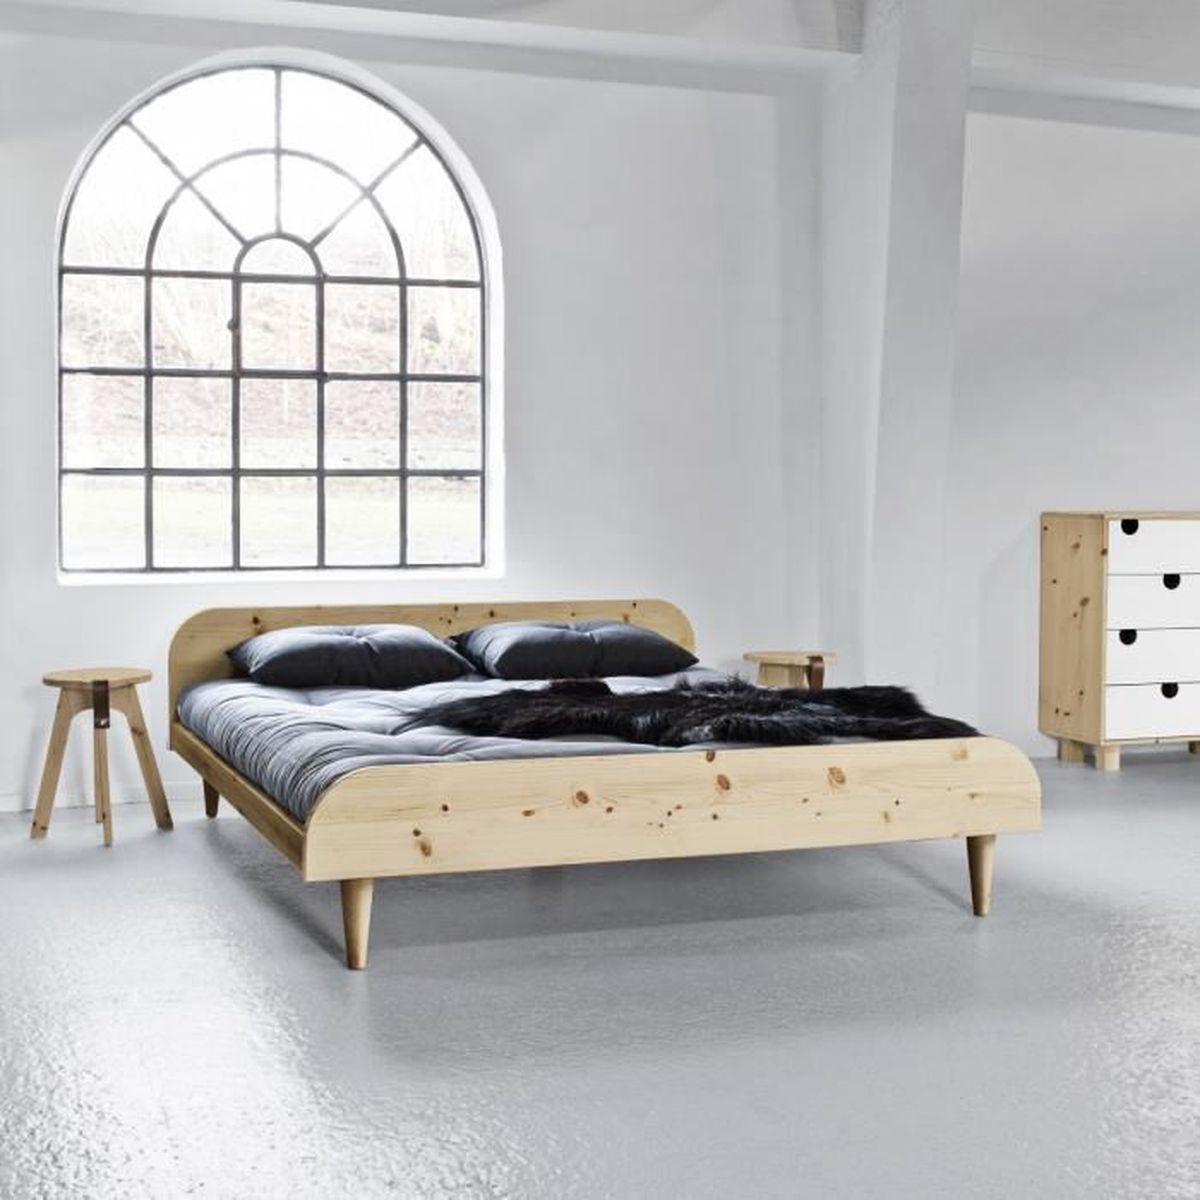 tete de lit futon achat vente pas cher. Black Bedroom Furniture Sets. Home Design Ideas